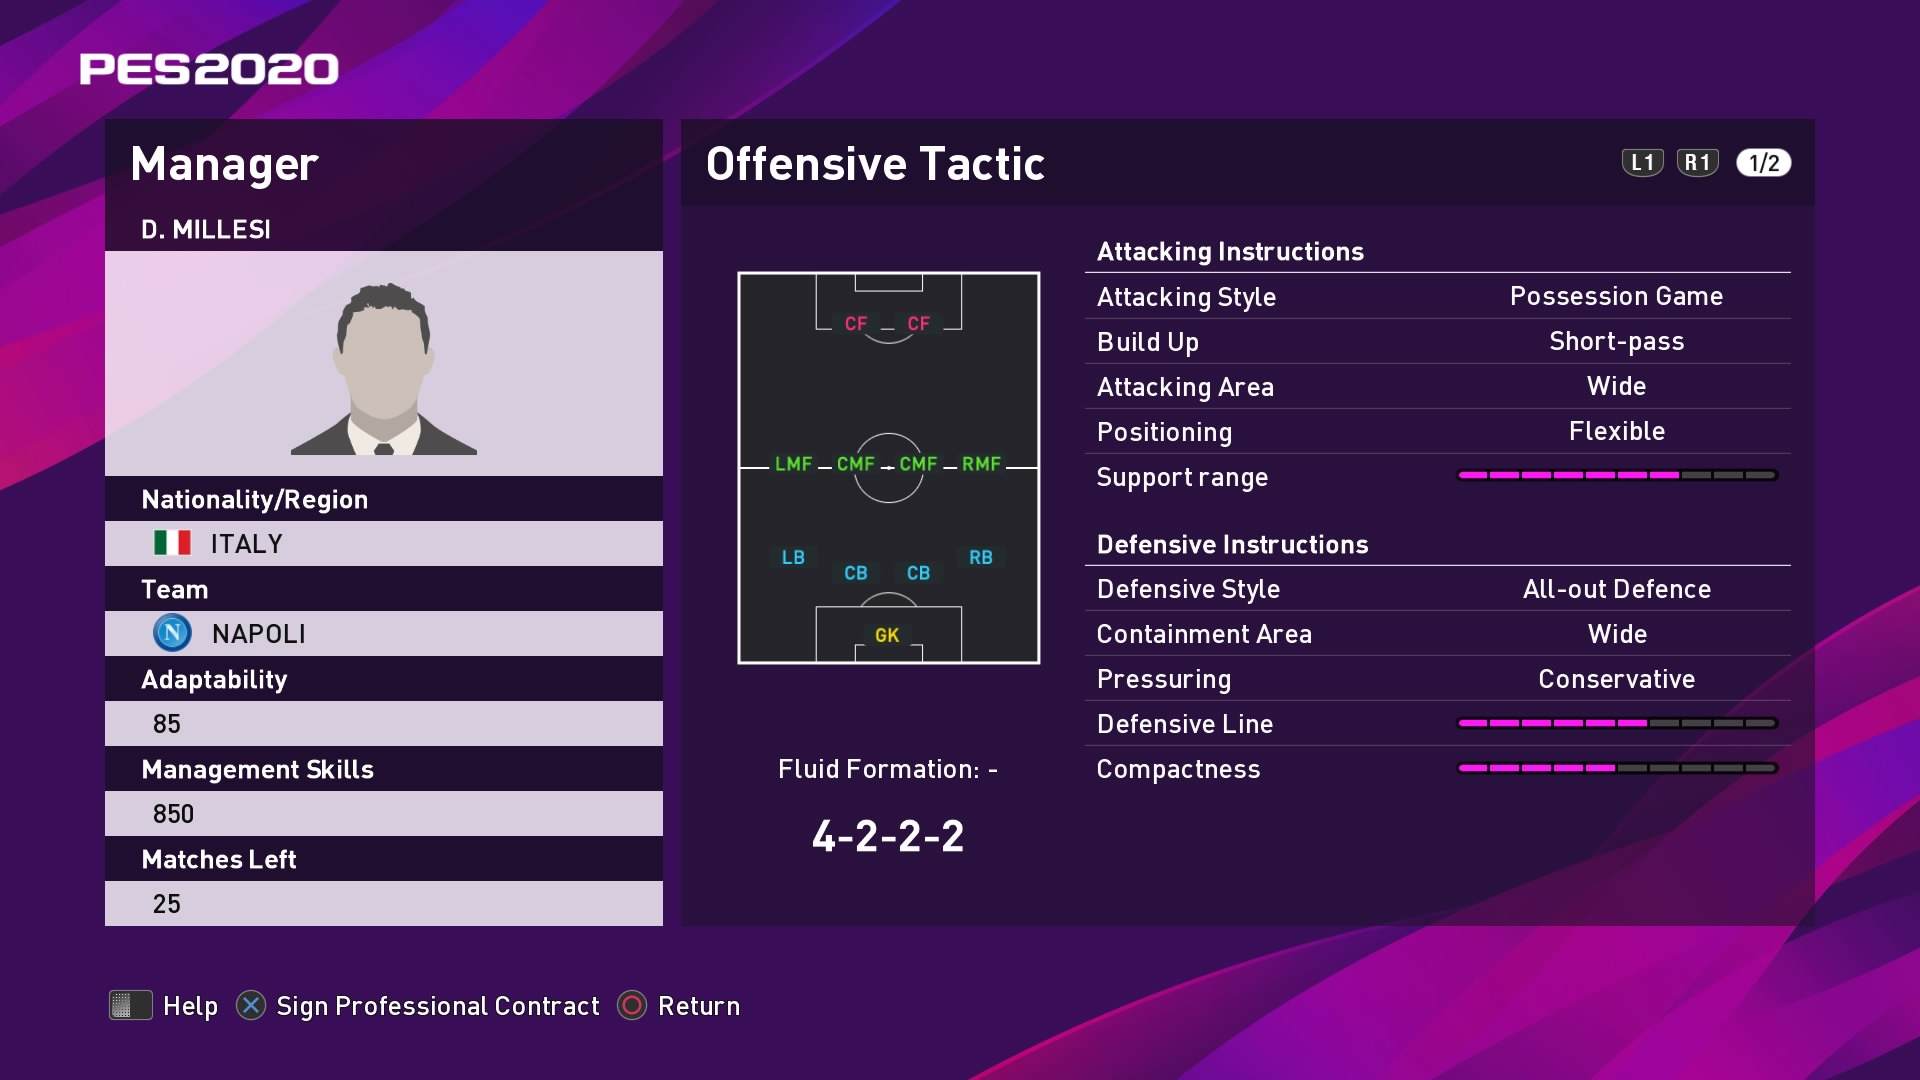 D. Millesi (Carlo Ancelotti) Offensive Tactic in PES 2020 myClub